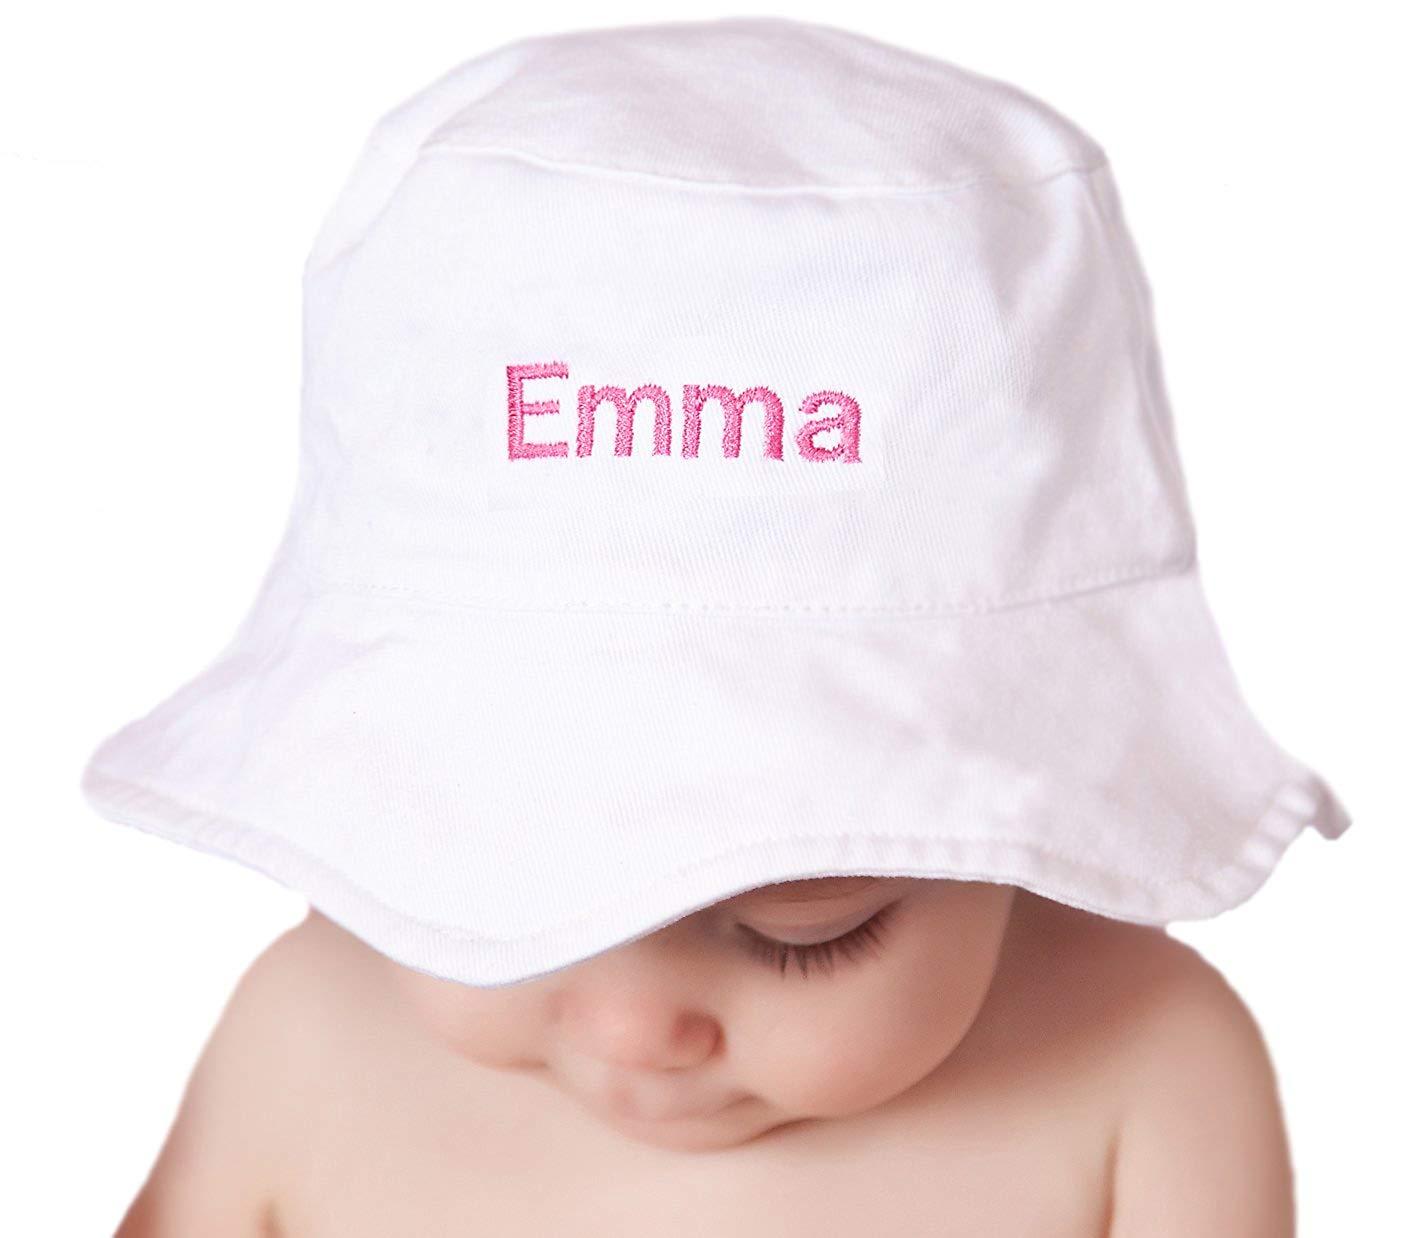 340ca8eb413 Get Quotations · Melondipity s Personalized White Sun Hat for Baby and  Toddler Girls - Pink Name Embroidery